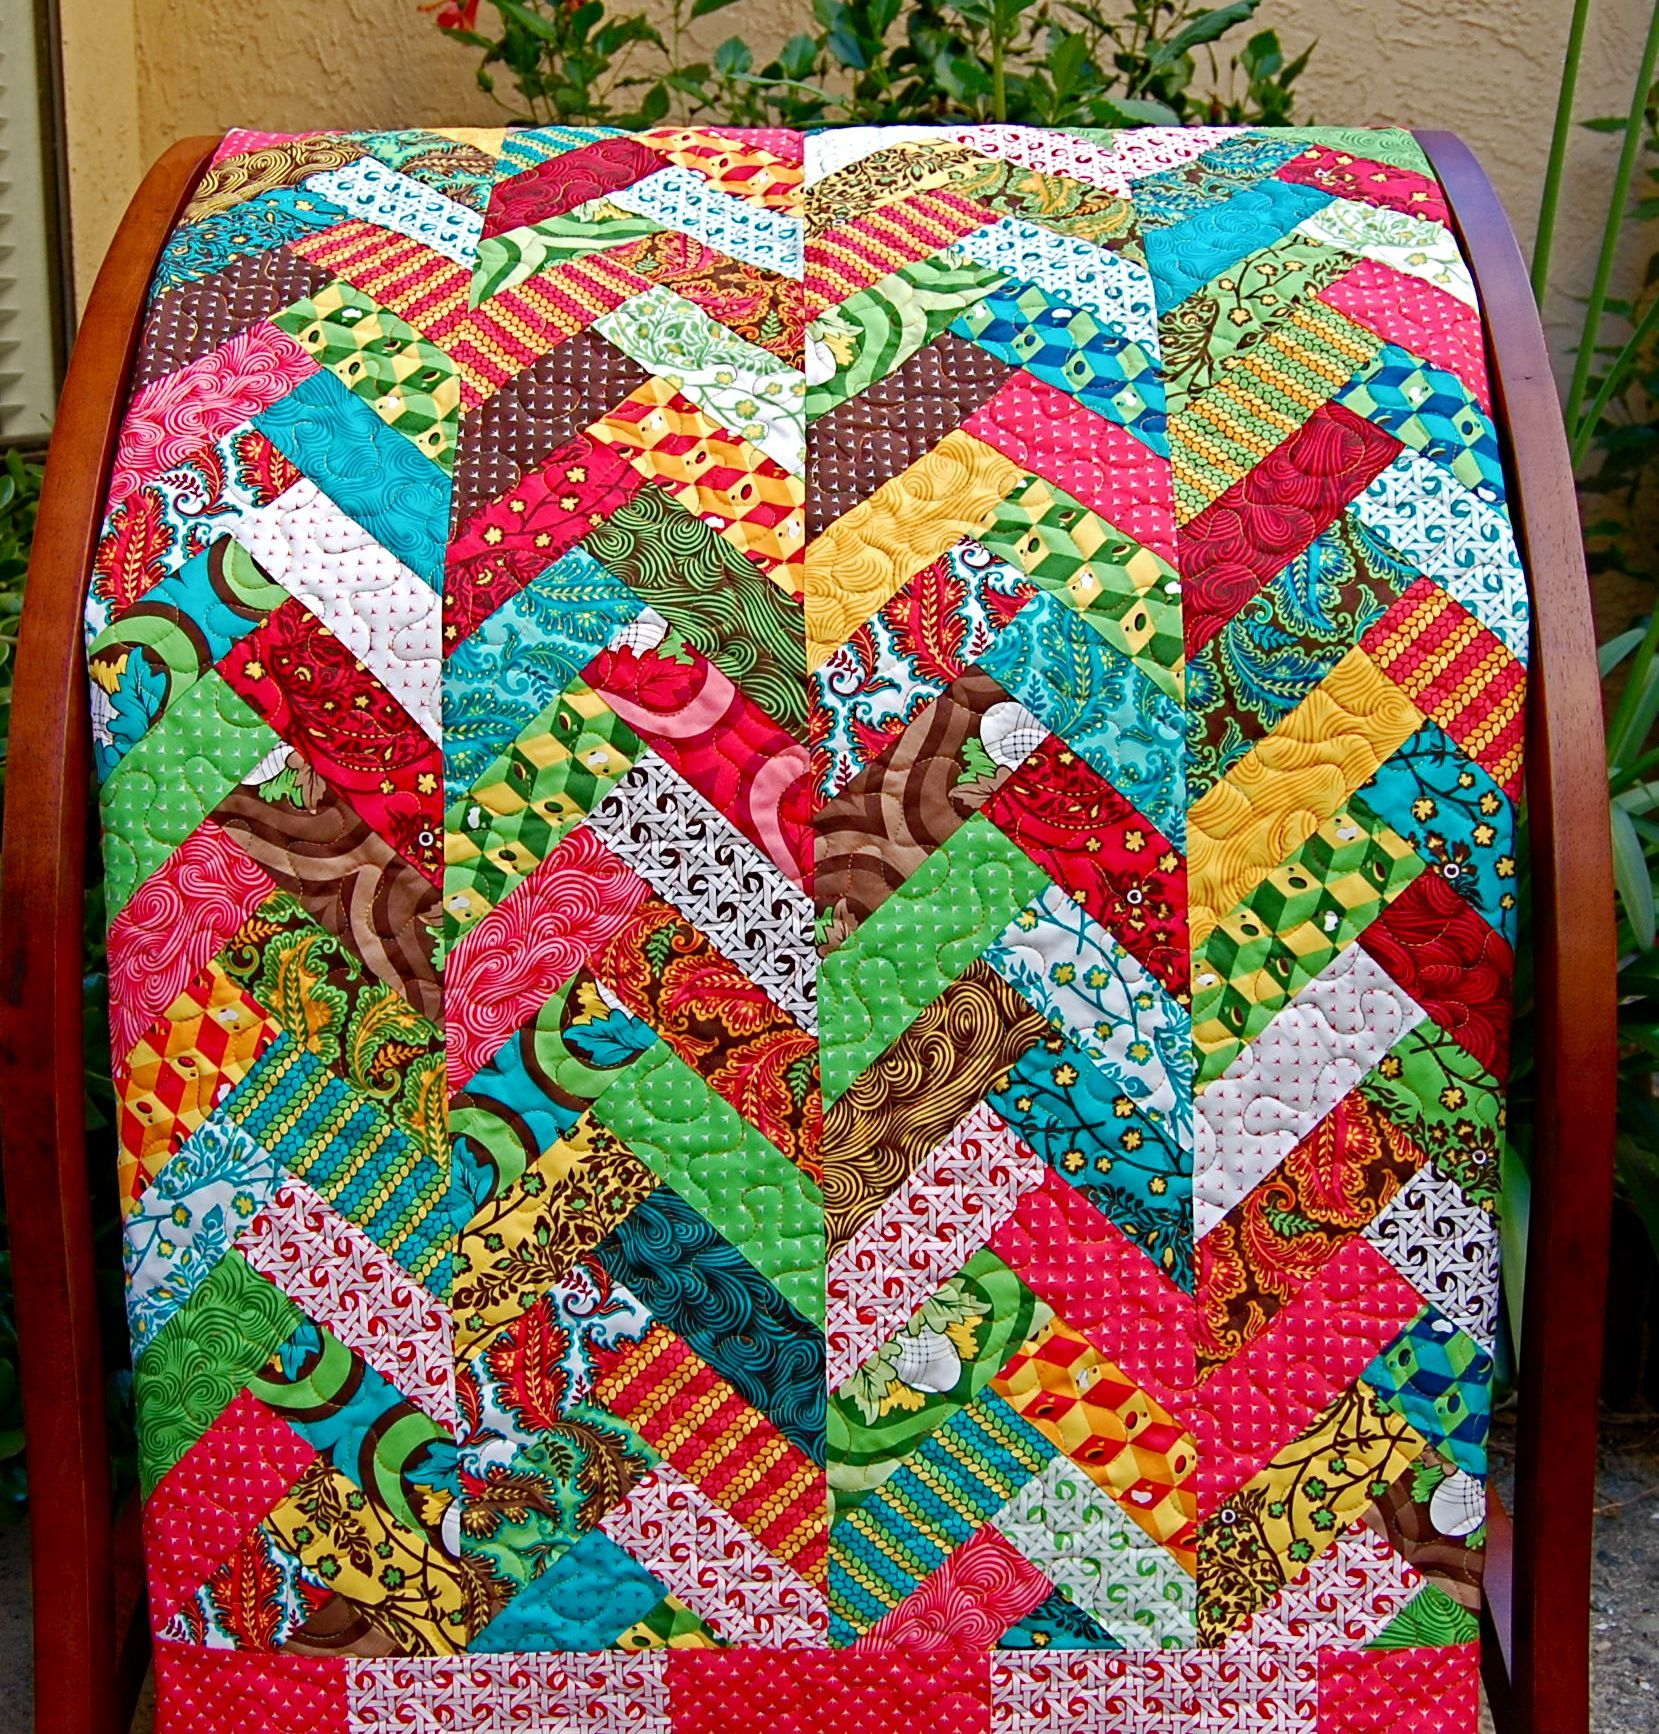 Scrappy Braid Quilt I Did A Scrappy Braid As A Border On A Wall Hanging And Everyone Falls In Love With It I Never T Quilt Patterns Quilts Herringbone Quilt